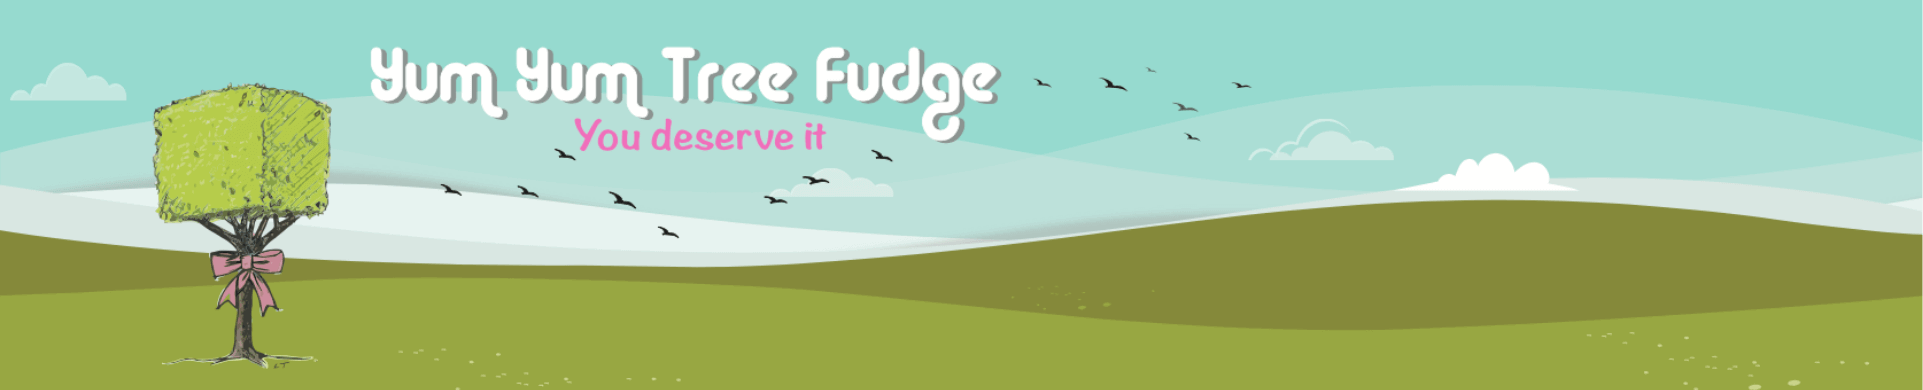 Yum Yum Tree Fudge Ltd